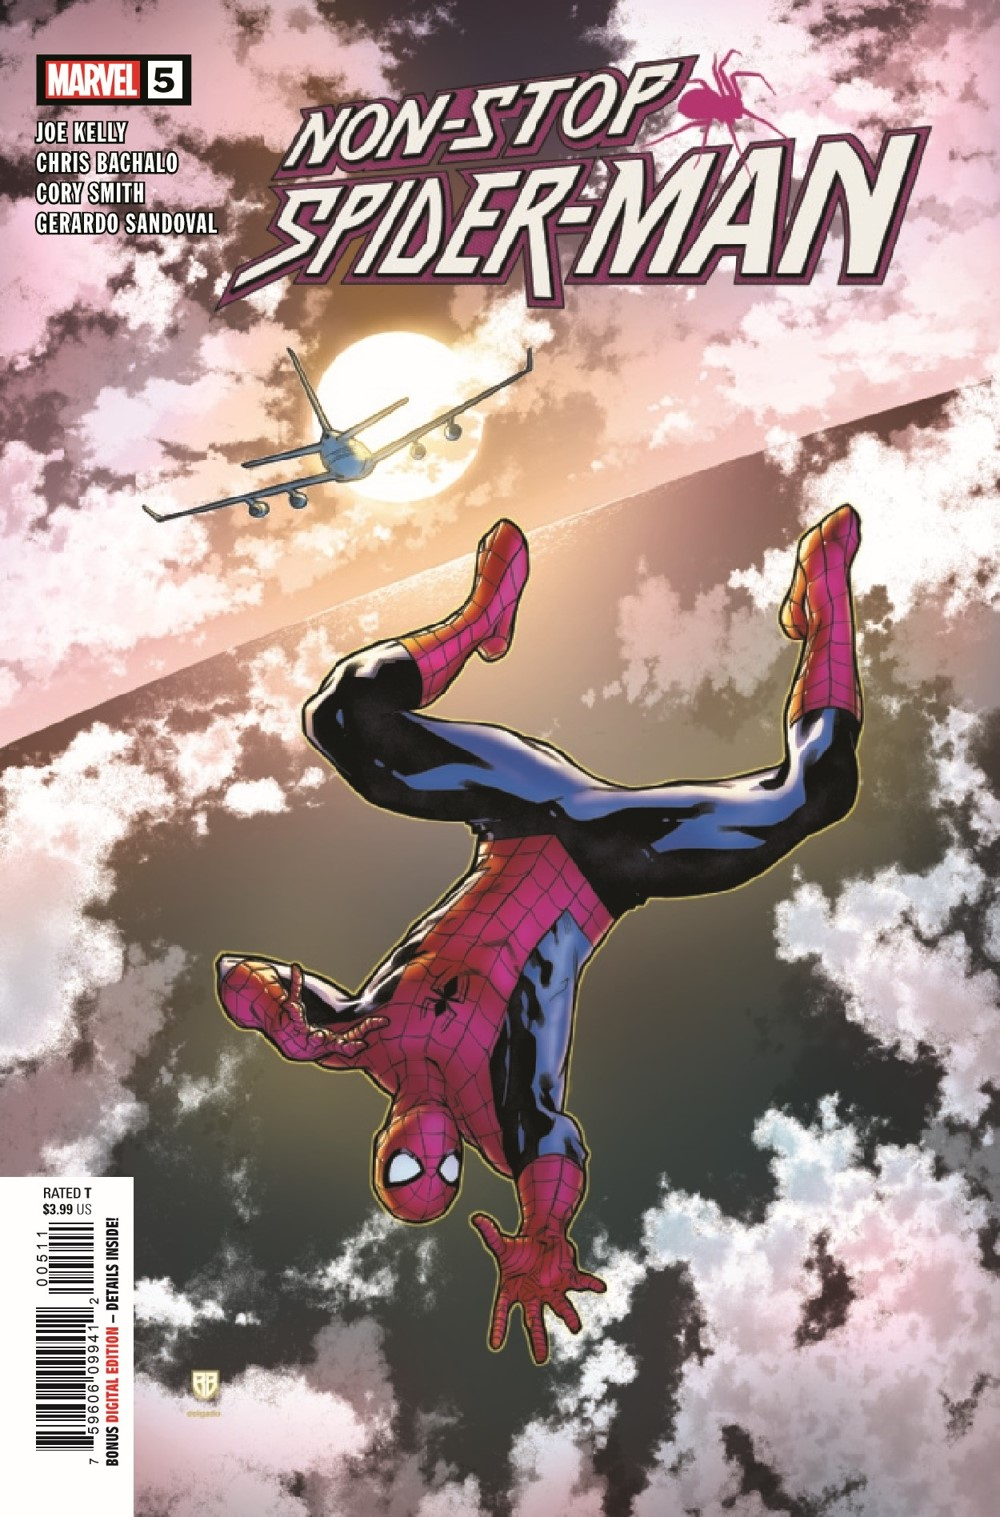 NONSTOPSM2021005_Preview-1 ComicList Previews: NON-STOP SPIDER-MAN #5